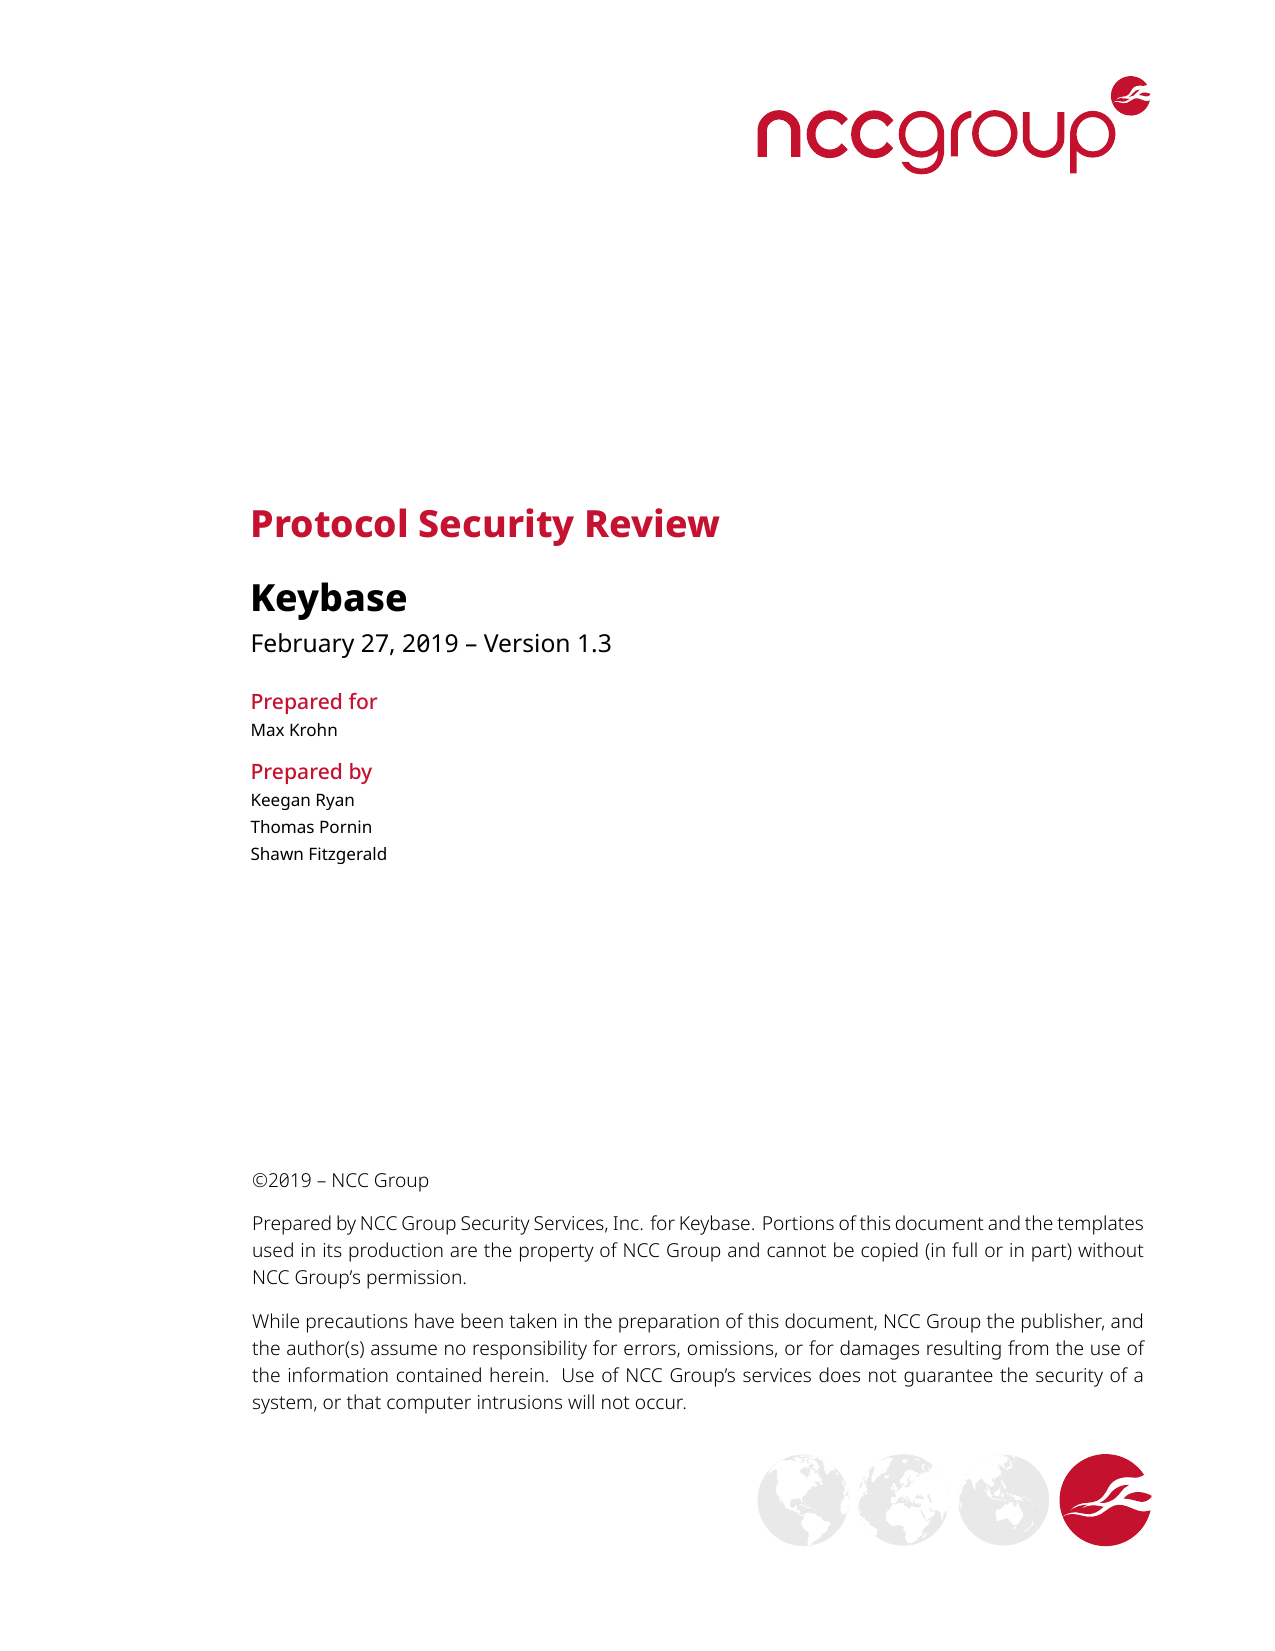 First page of the 'NCC Group Keybase KB2018 Public Report 2019-02-27 v1.3' PDF